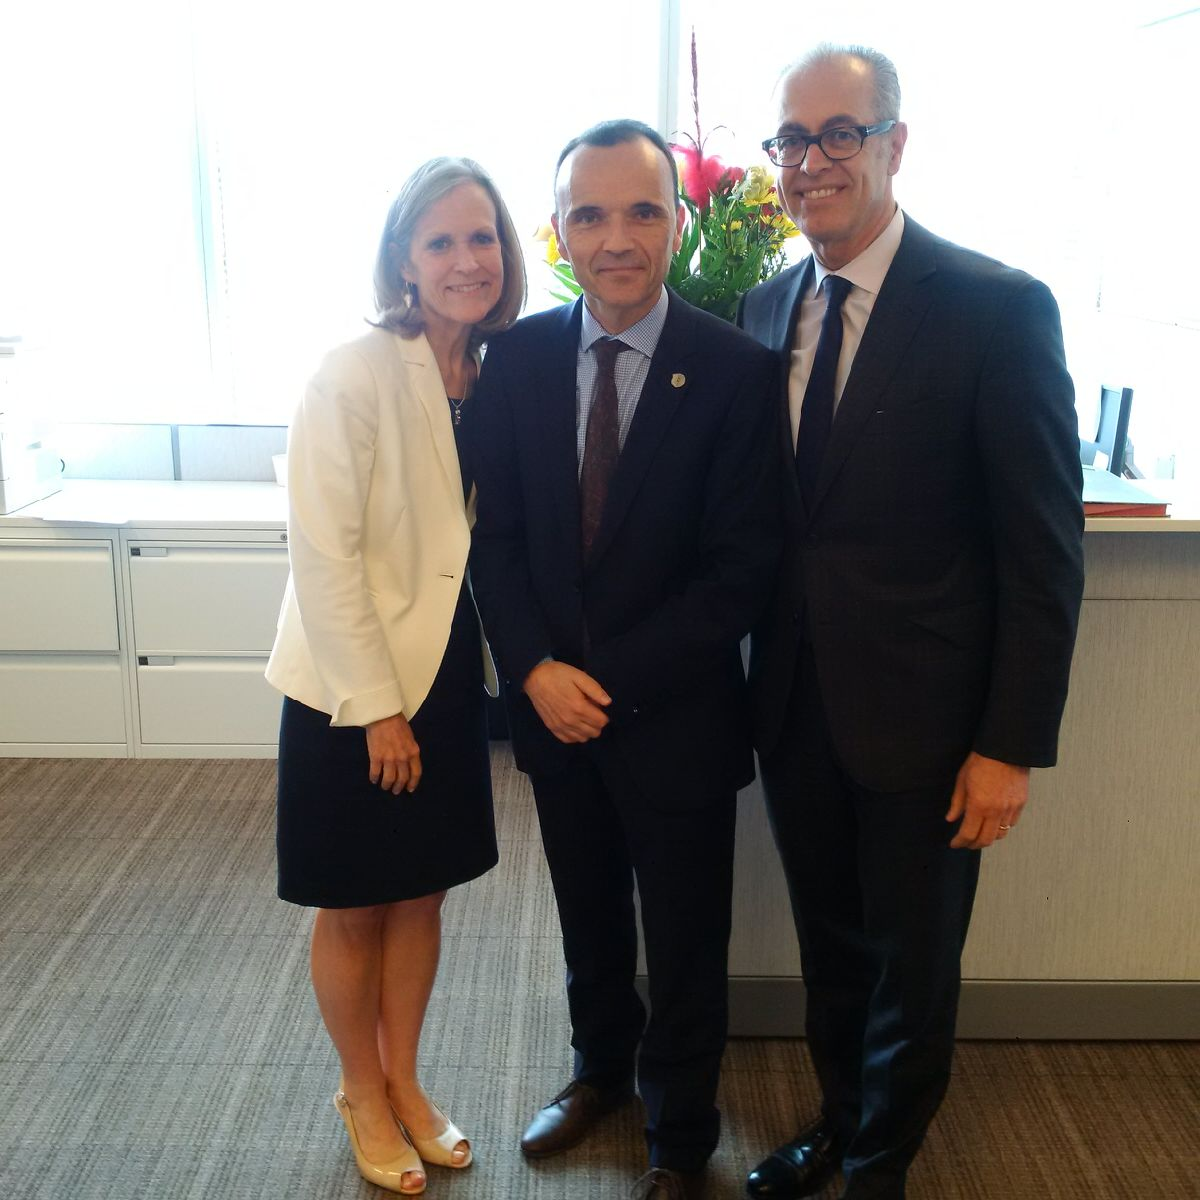 Announcement: Daniele Zanotti will be the next CEO of United Way Toronto & York Region. https://t.co/UzxuZnlNwl https://t.co/dufTIiAnUF